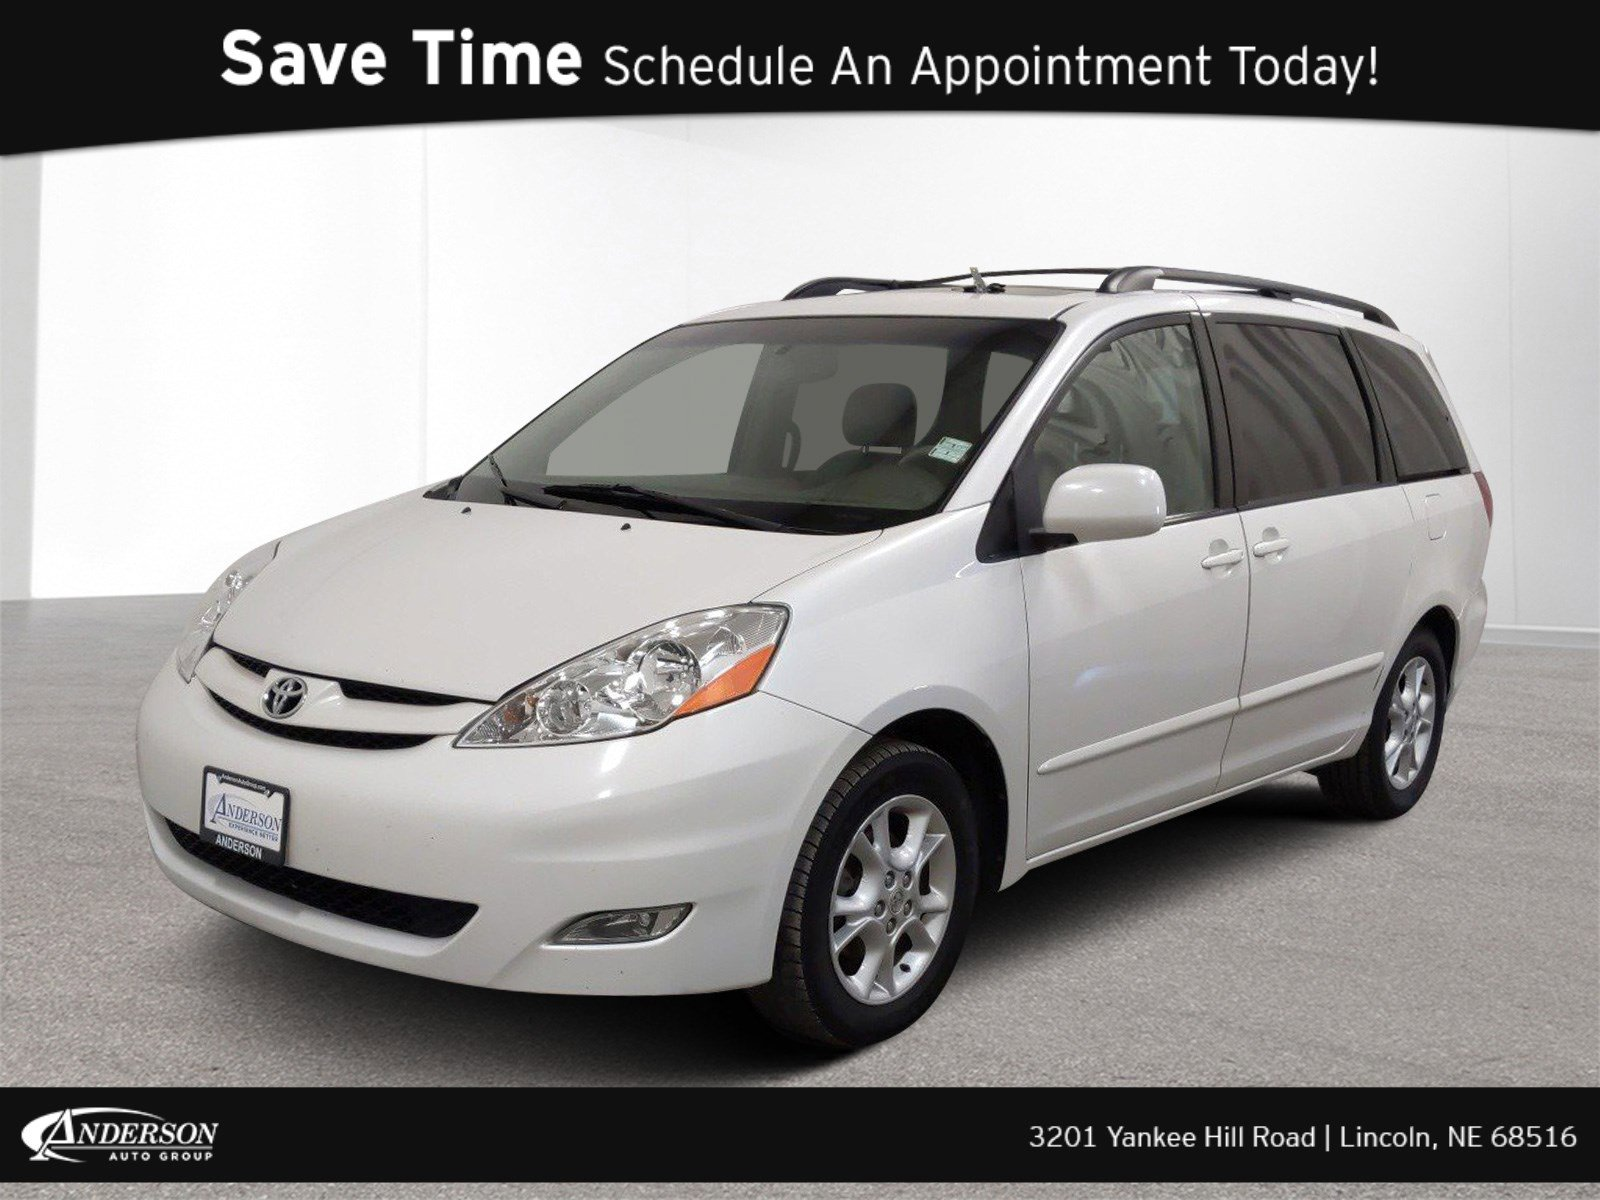 Used 2006 Toyota Sienna XLE Mini-van for sale in Lincoln NE